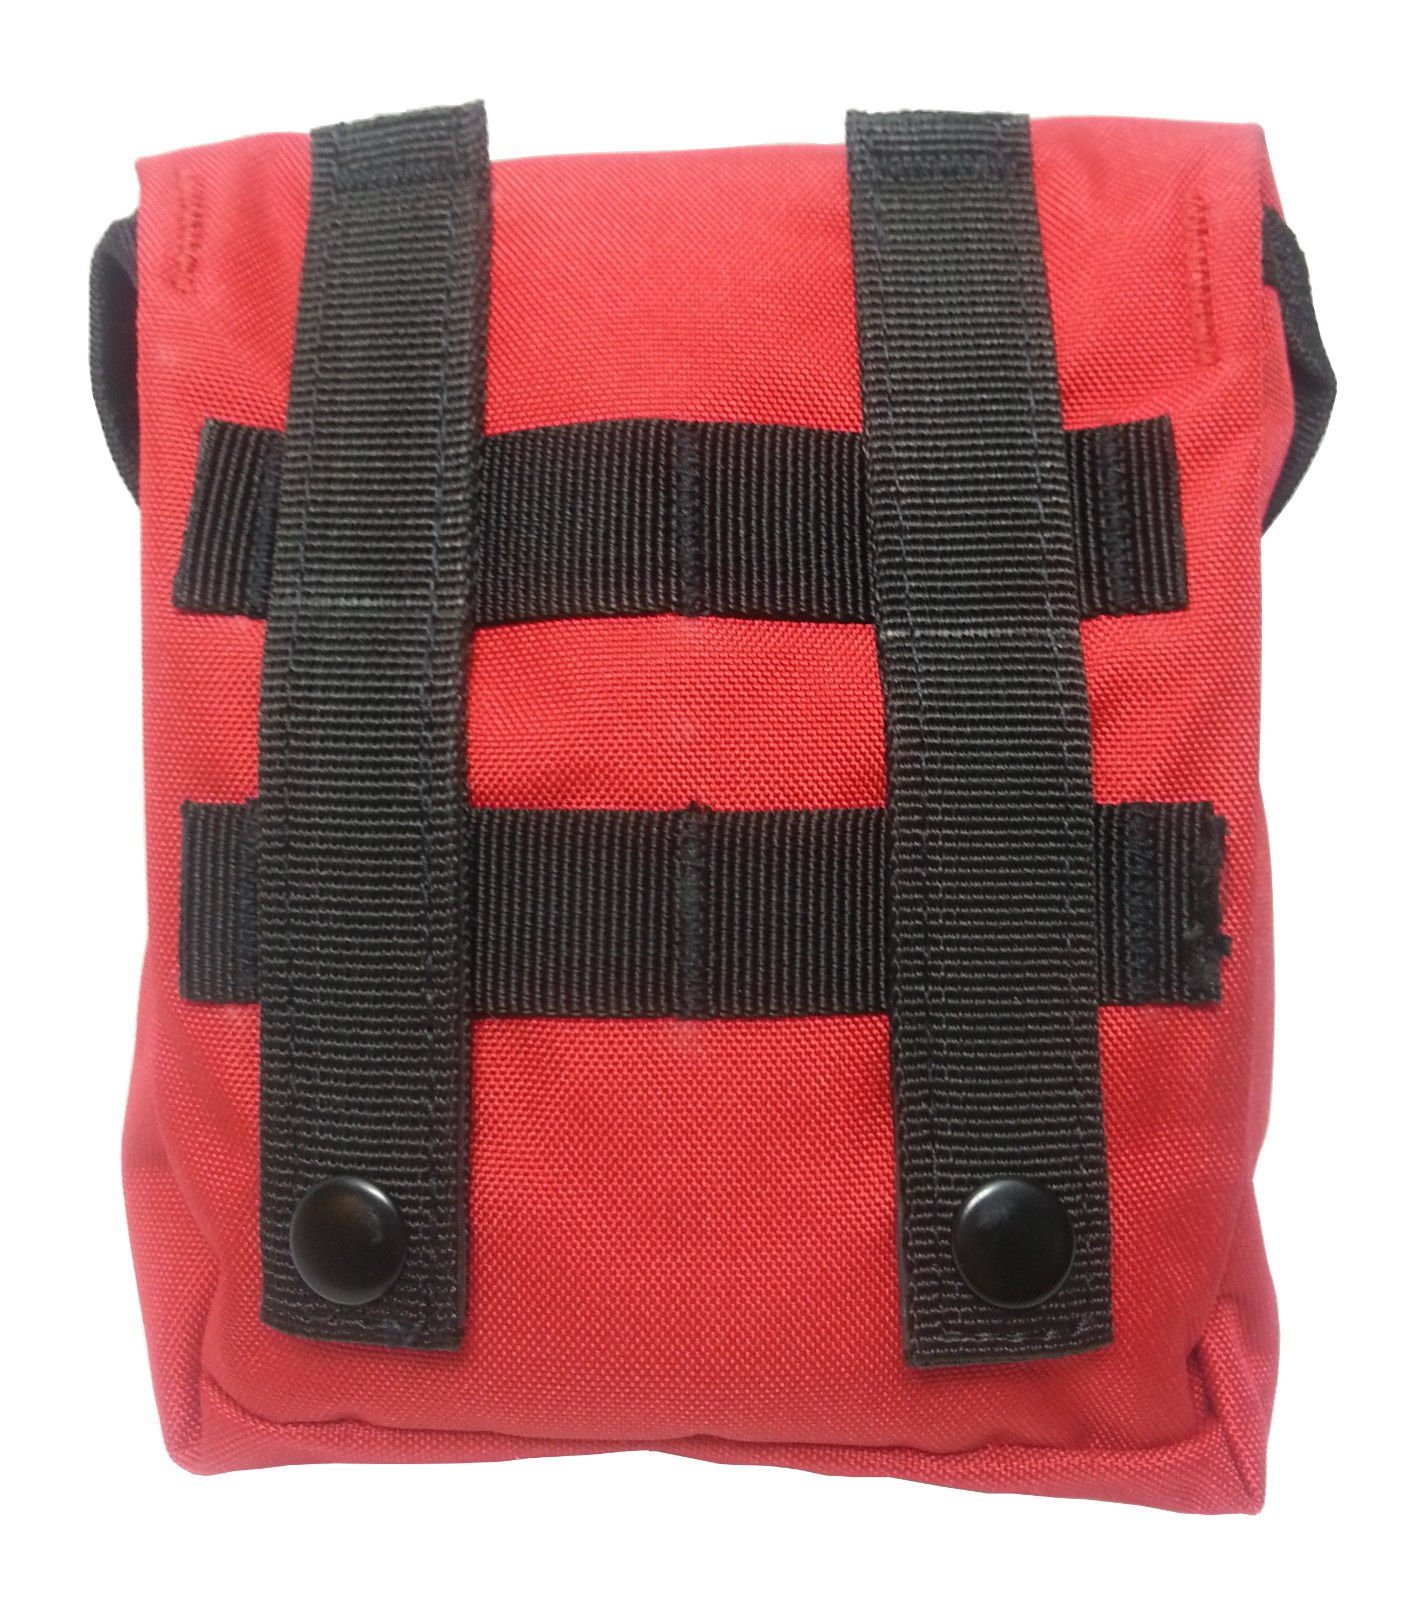 Surplus Provisions New Recruit First Aid Kit - Military IFAK Army Medic - RED - #FA15